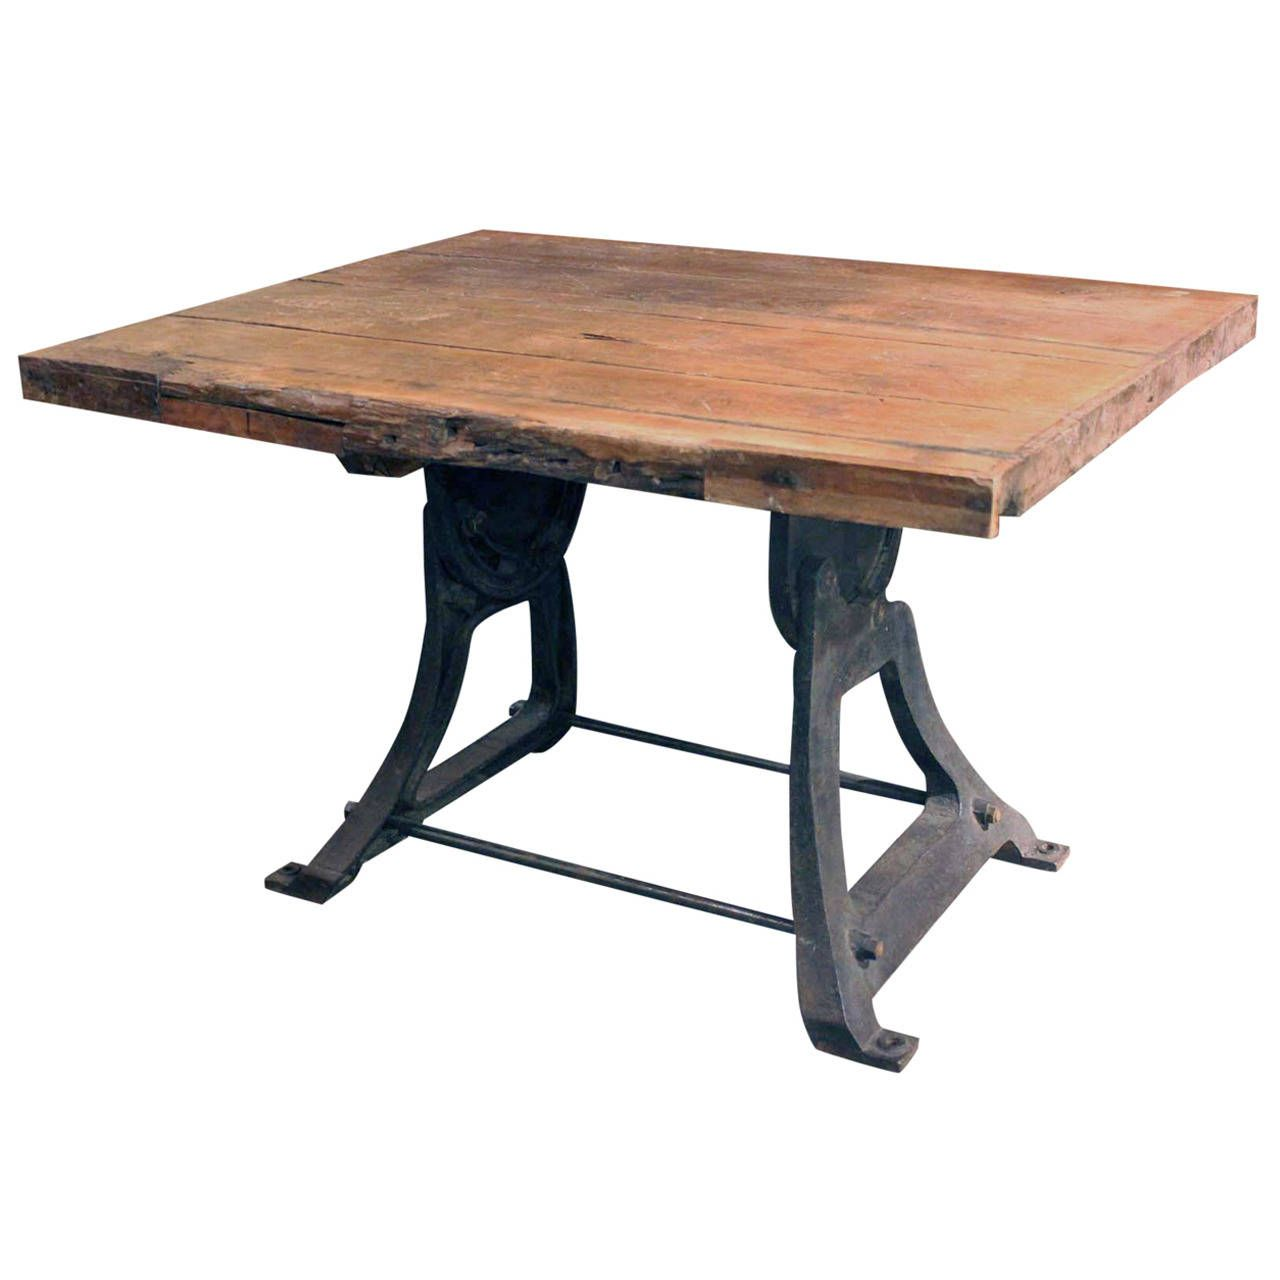 French Industrial Center Table | From a unique collection of antique and modern center tables at https://www.1stdibs.com/furniture/tables/center-tables/